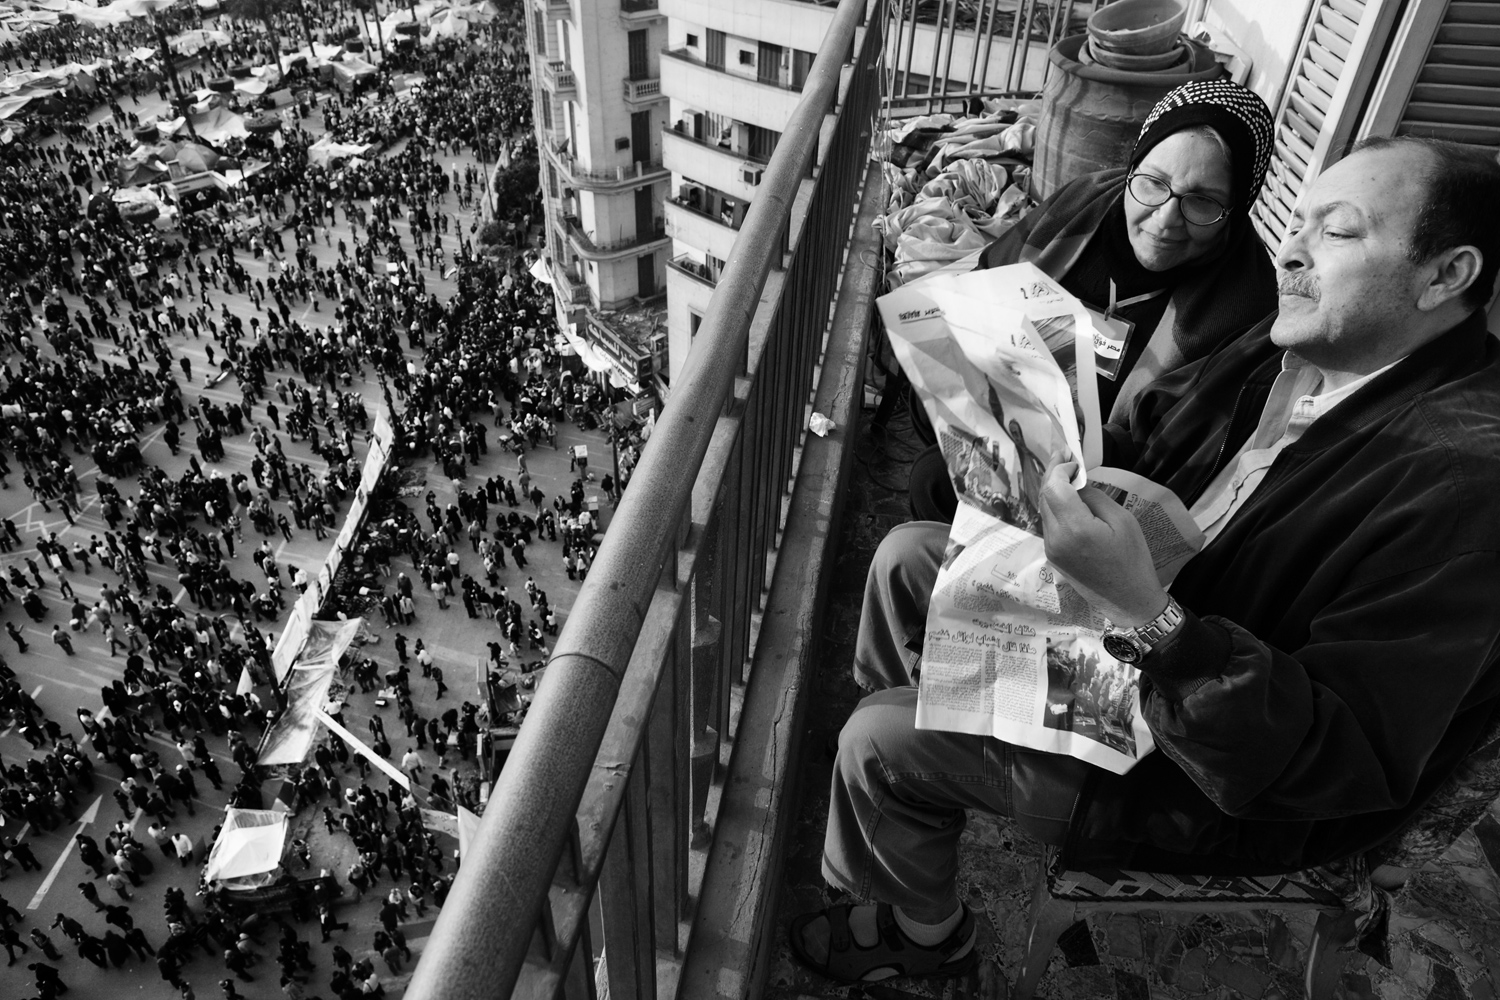 A senior couple reads an Egyptian newspaper overseeing the protests against Egyptian dictator Hosni Mubarak on Tahrir square.